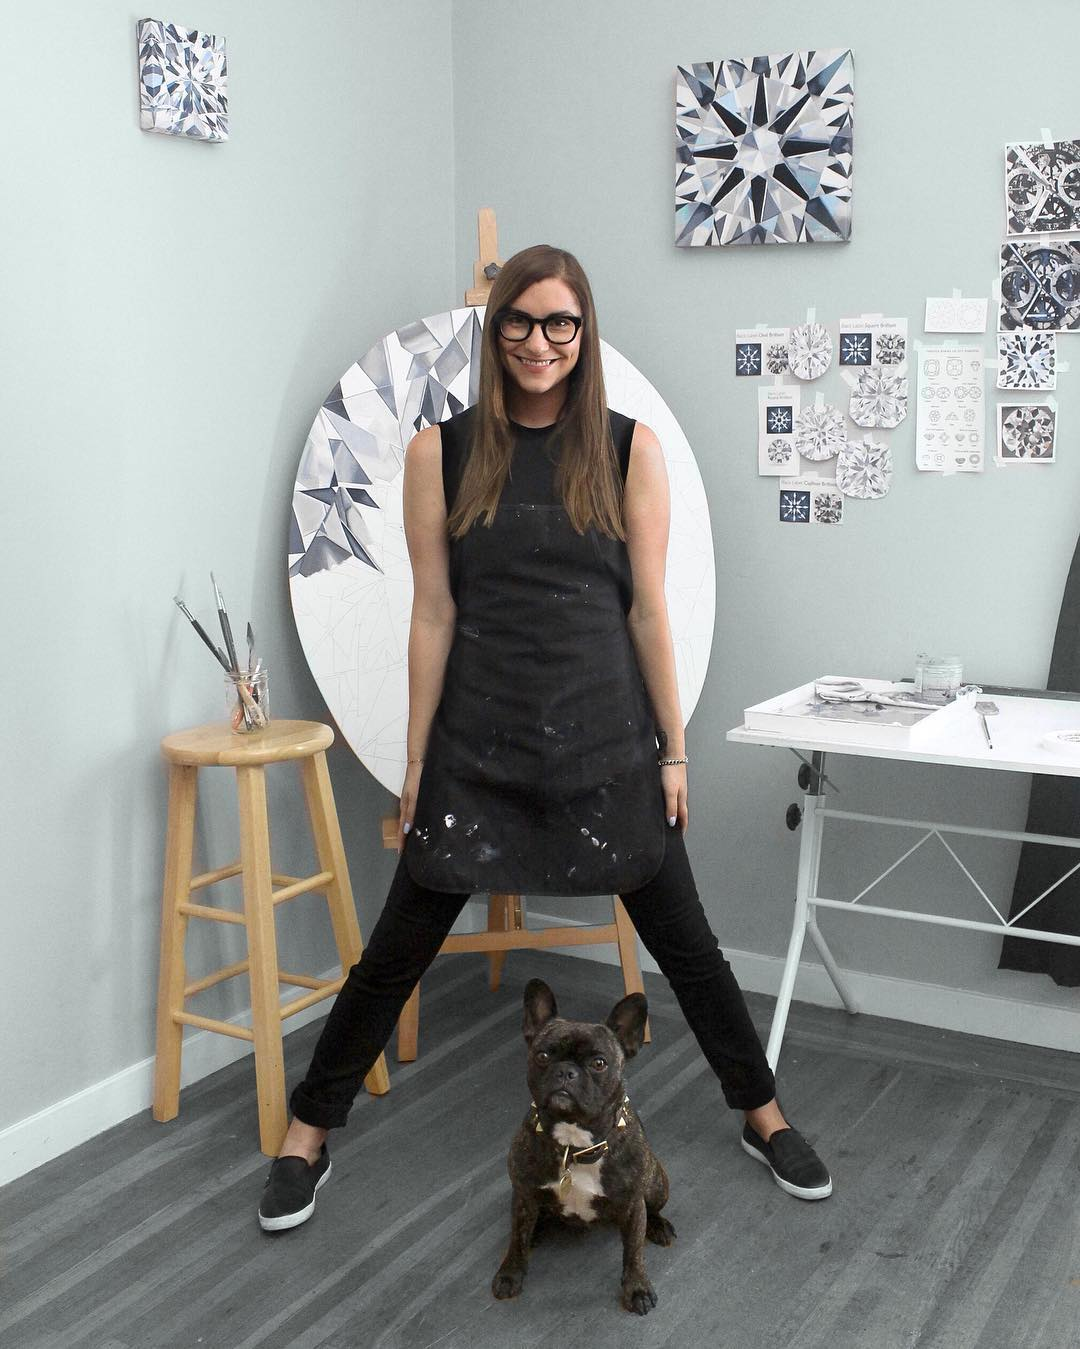 Surprise!!! A project commissioned by @forevermarkdiamonds is officially underway! And this time the canvases are custom shapes by request. Follow @forevermarkdiamonds to see more behind-the-scenes photos! #diamondpainter #diamondlife #frenchbulldog .jpg